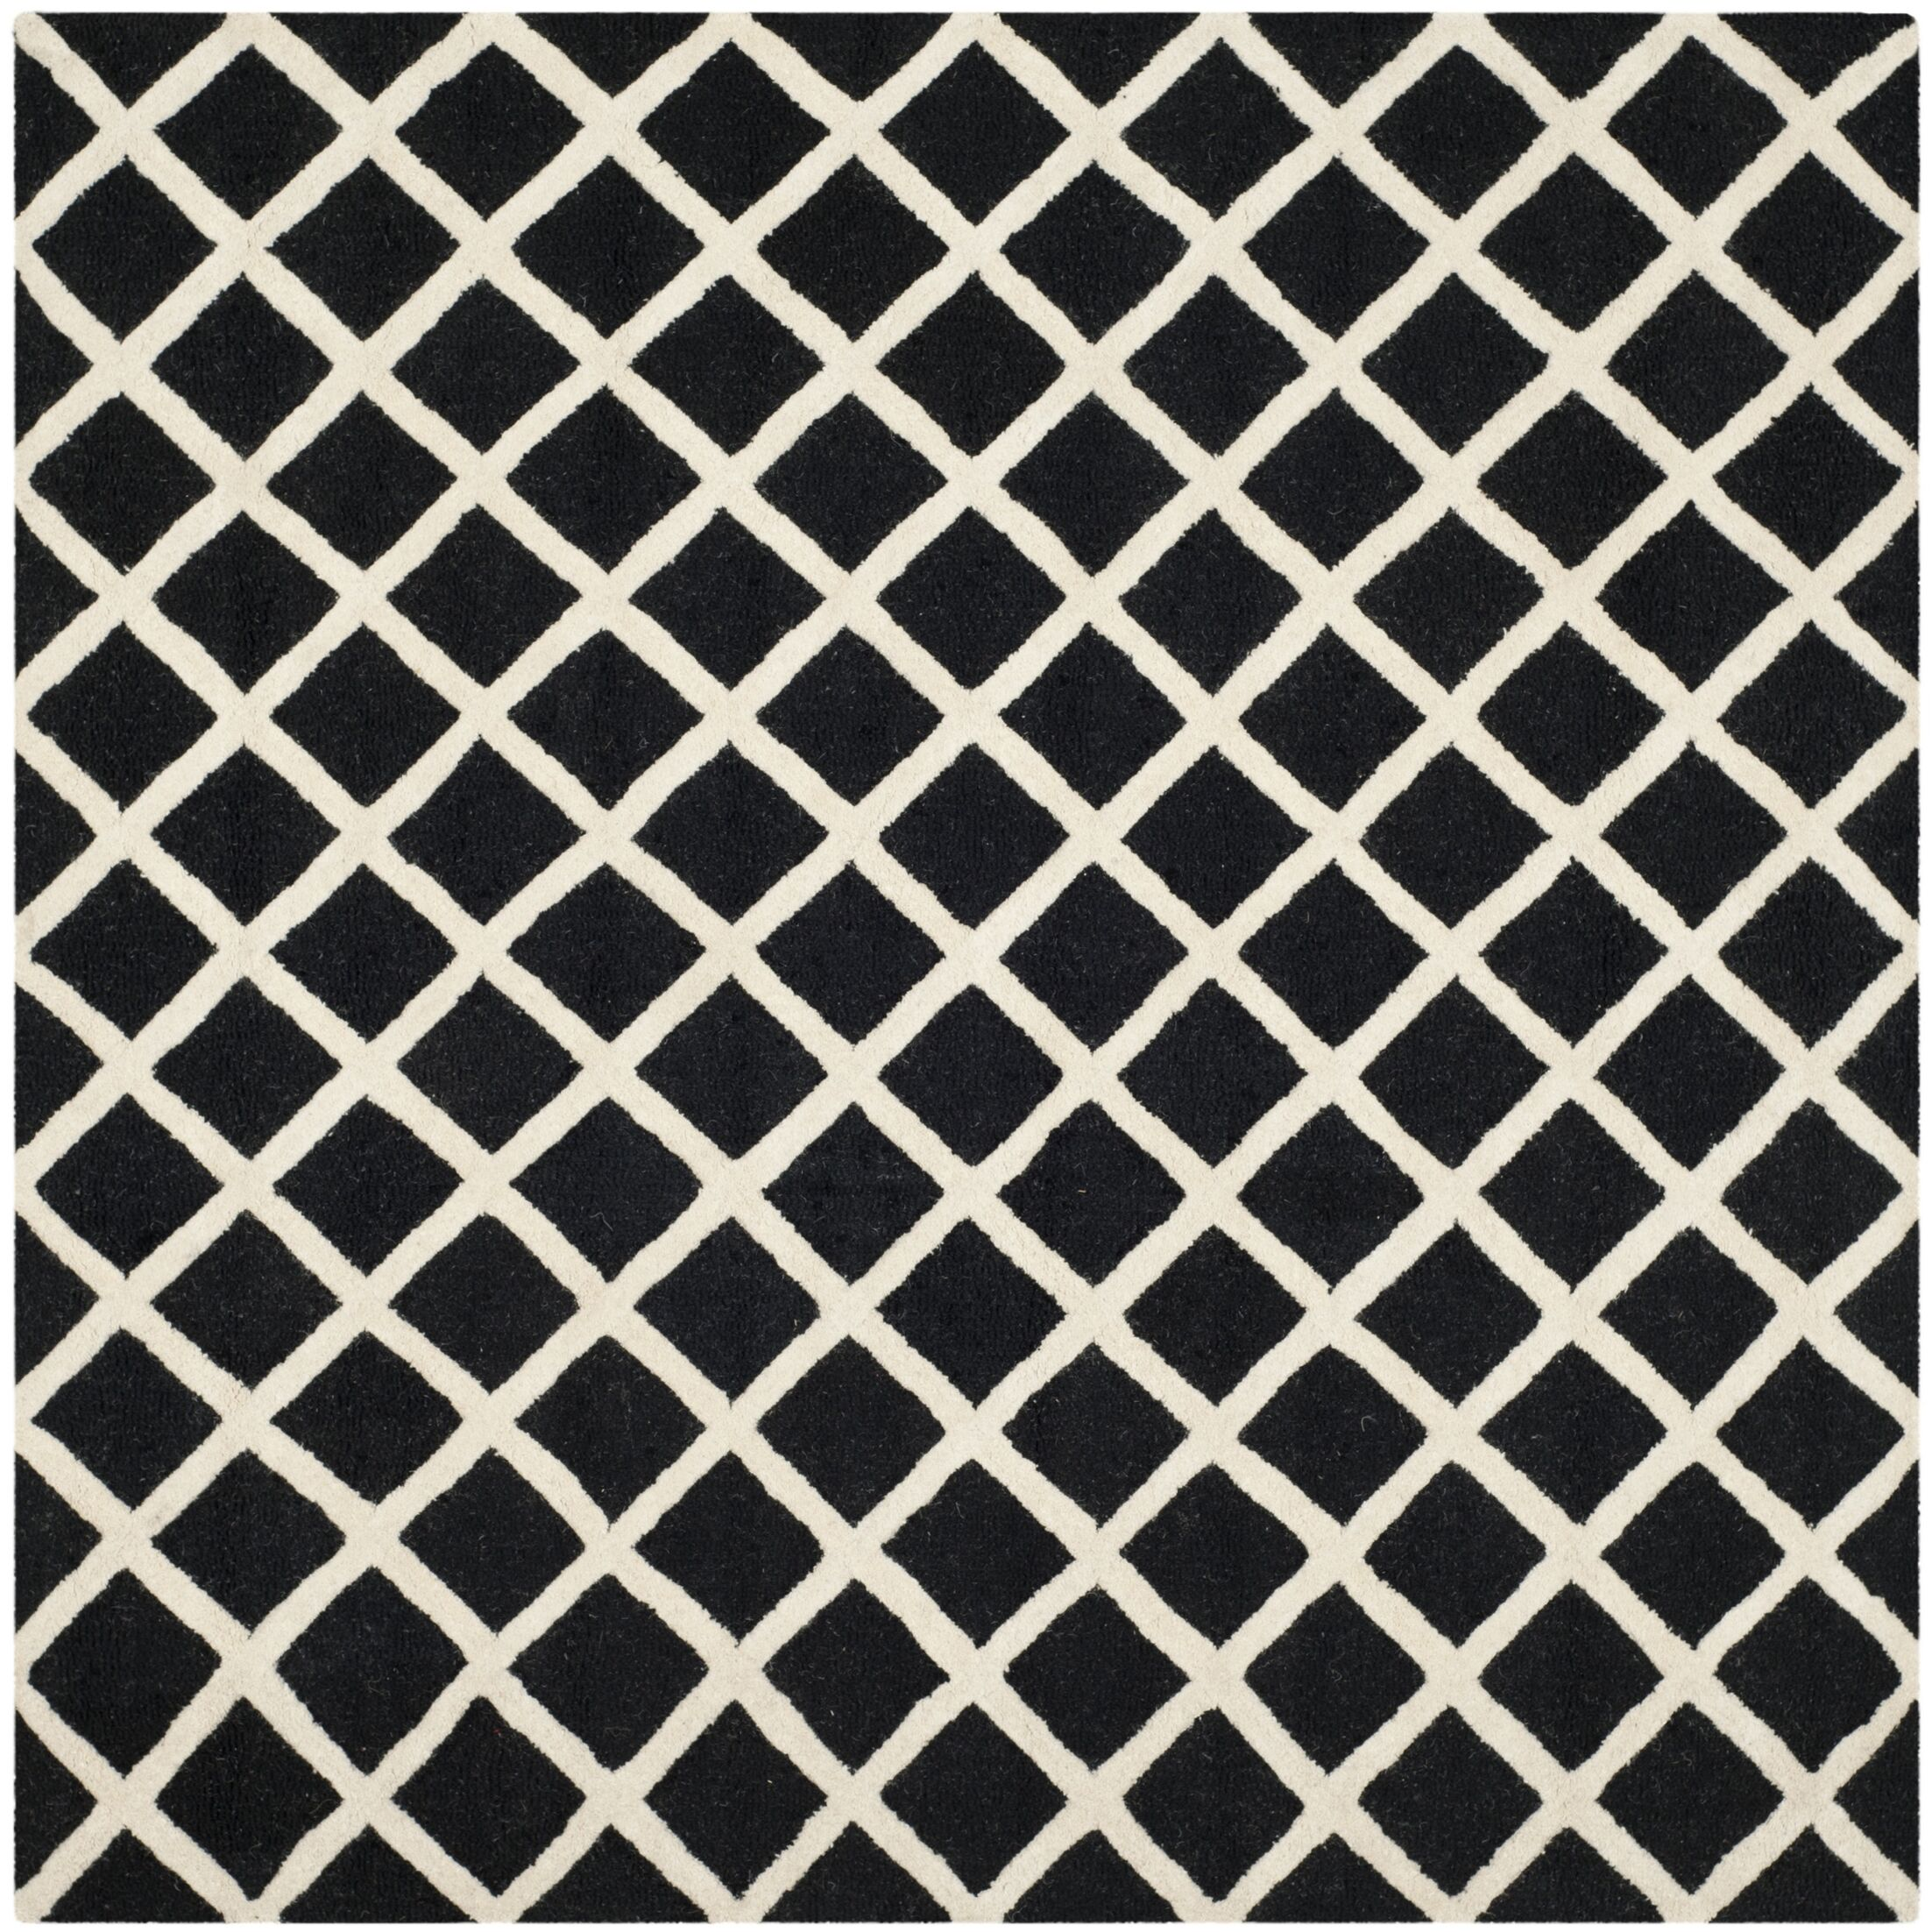 Martins Hand-Tufted Wool Black/White Area Rug Rug Size: Square 8'